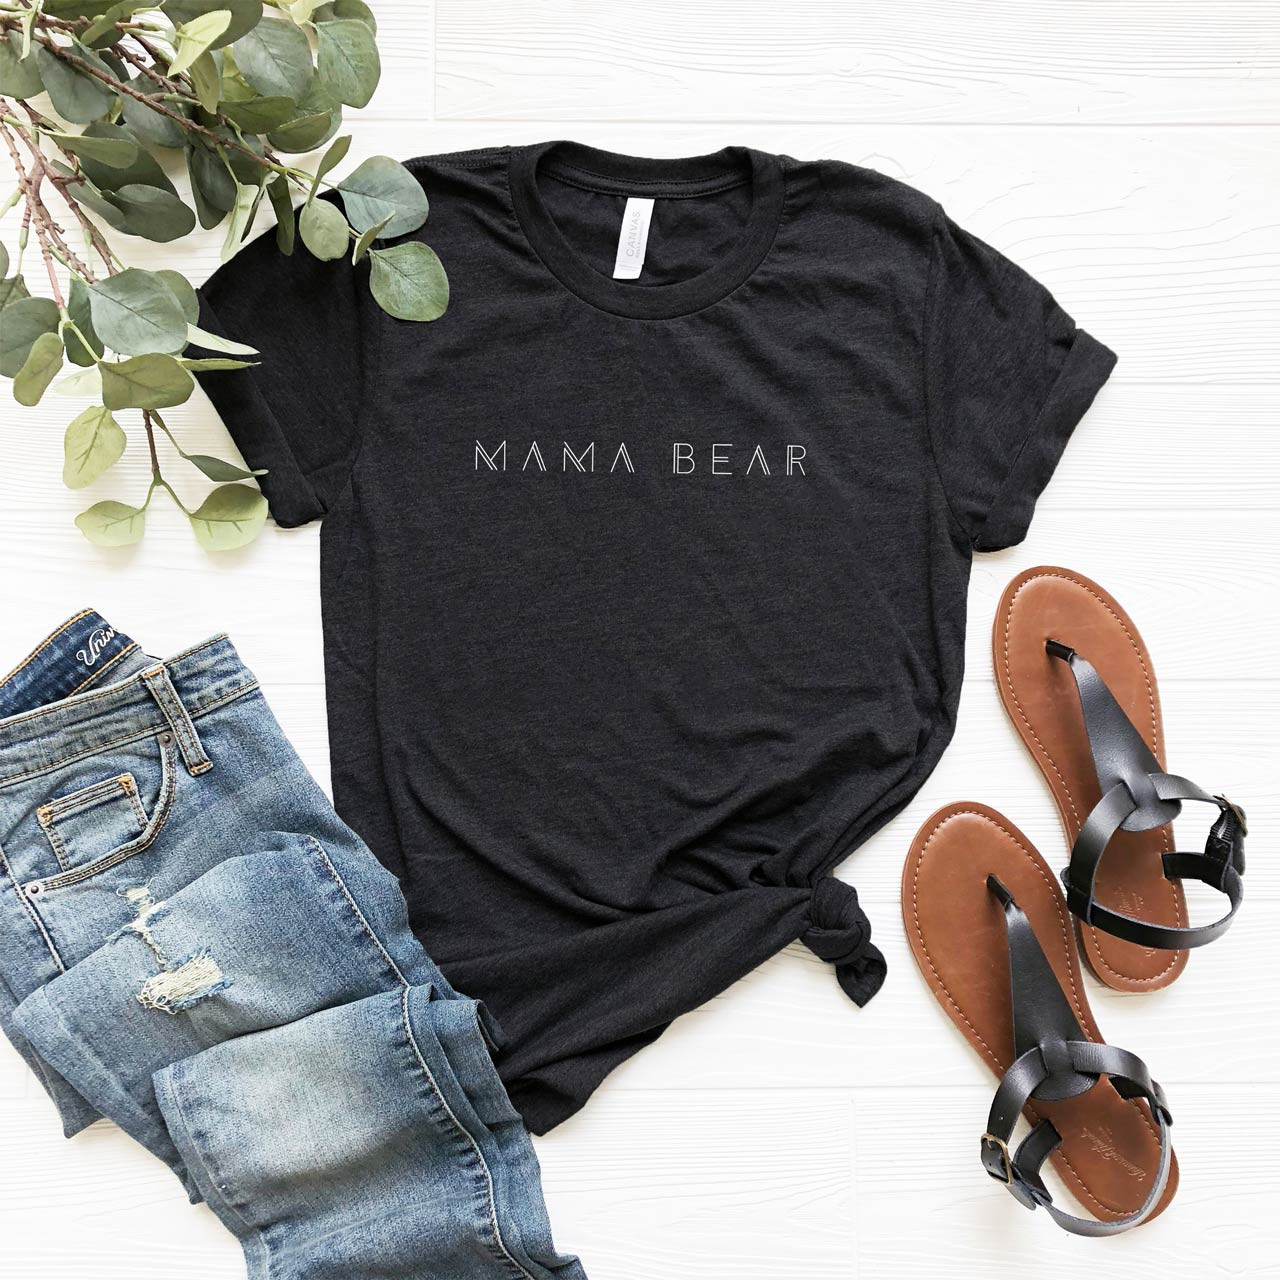 MAMA BEAR Vintage T-Shirt (White on Charcoal Black) from The Printed Home